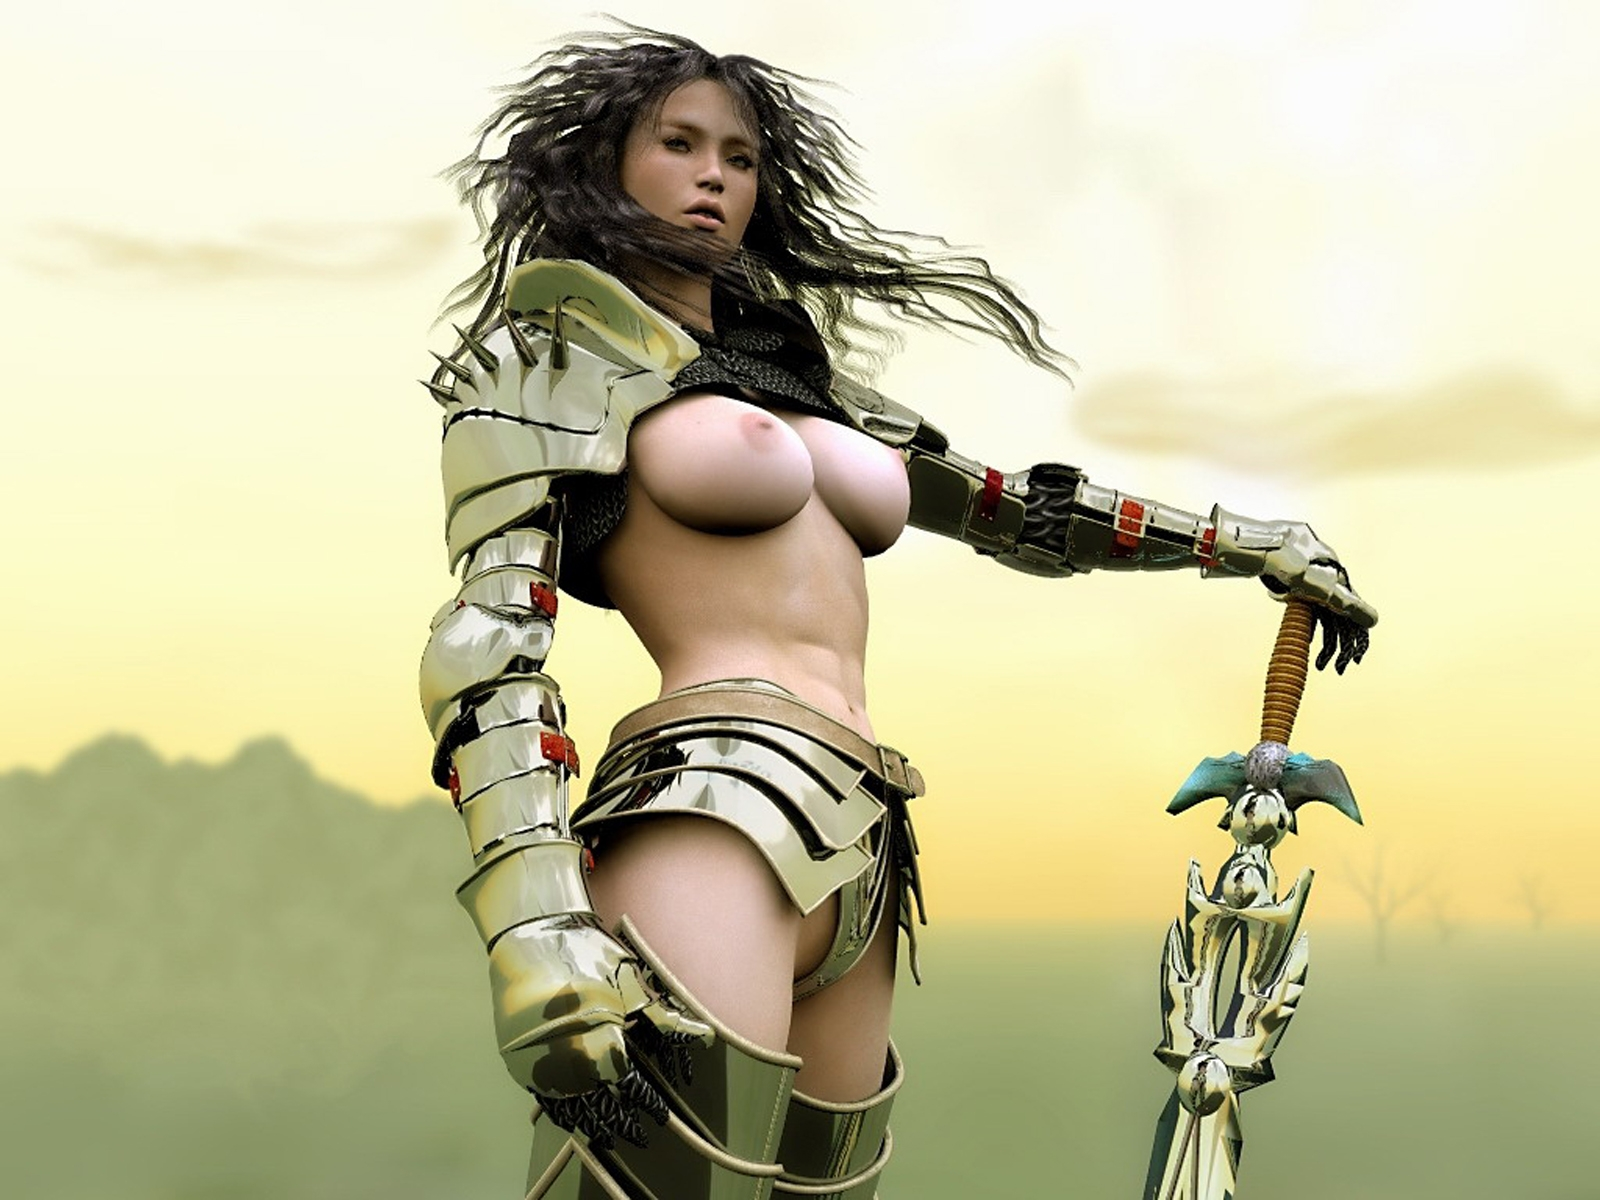 Wallpaper games warrior fantasy nude sexy pictures